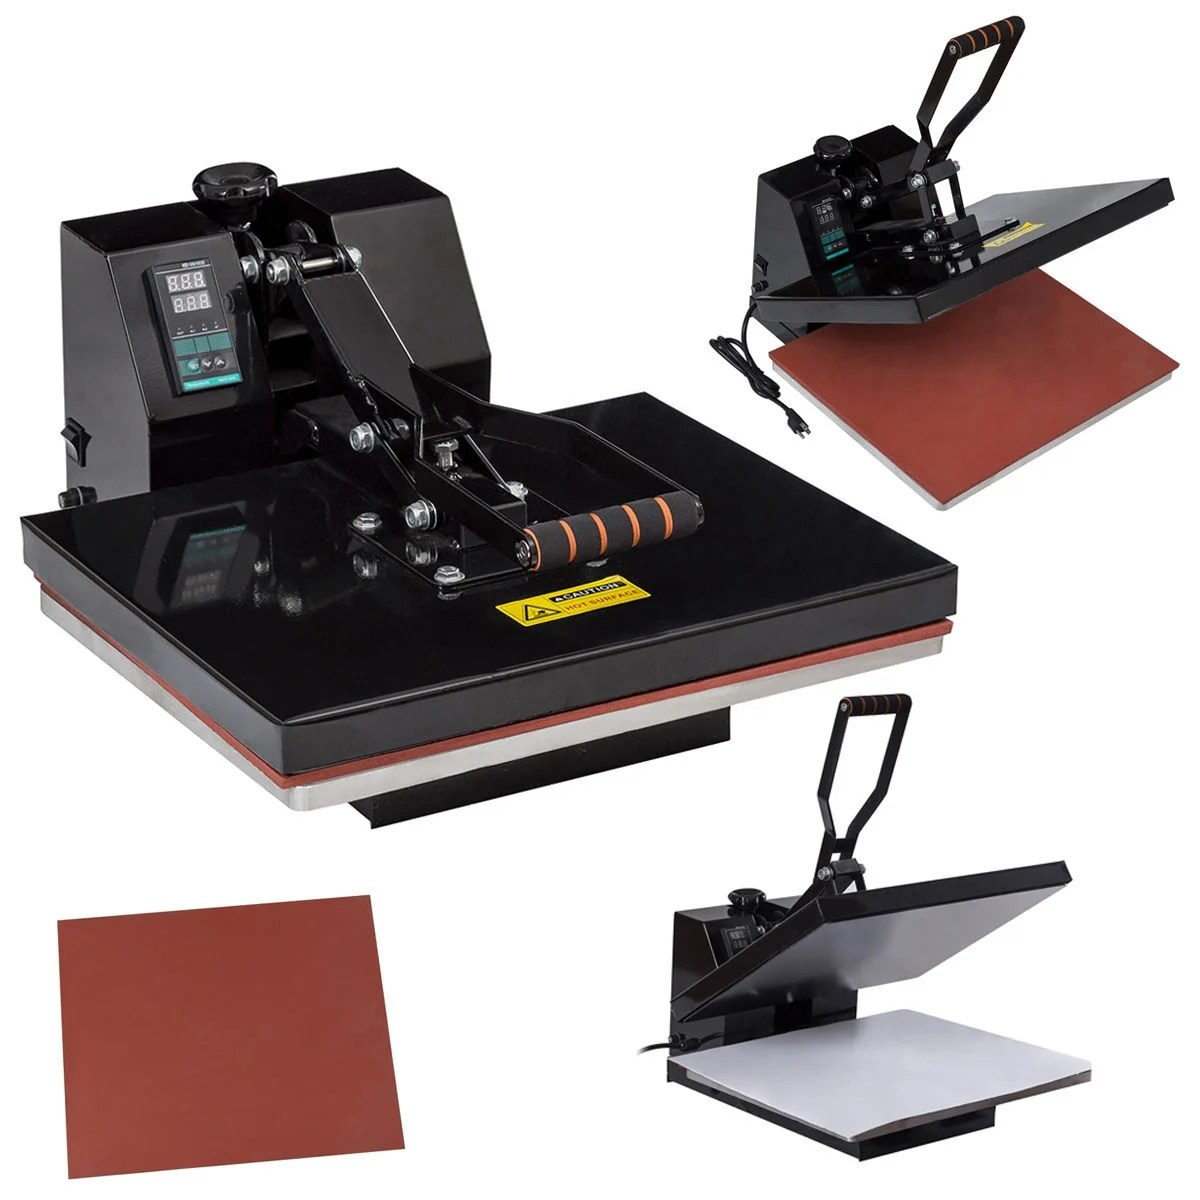 Sublimation Press Costway 16 X 20 Digital Heat Press Machine Transfer Sublimation Clamshell For T Shirts